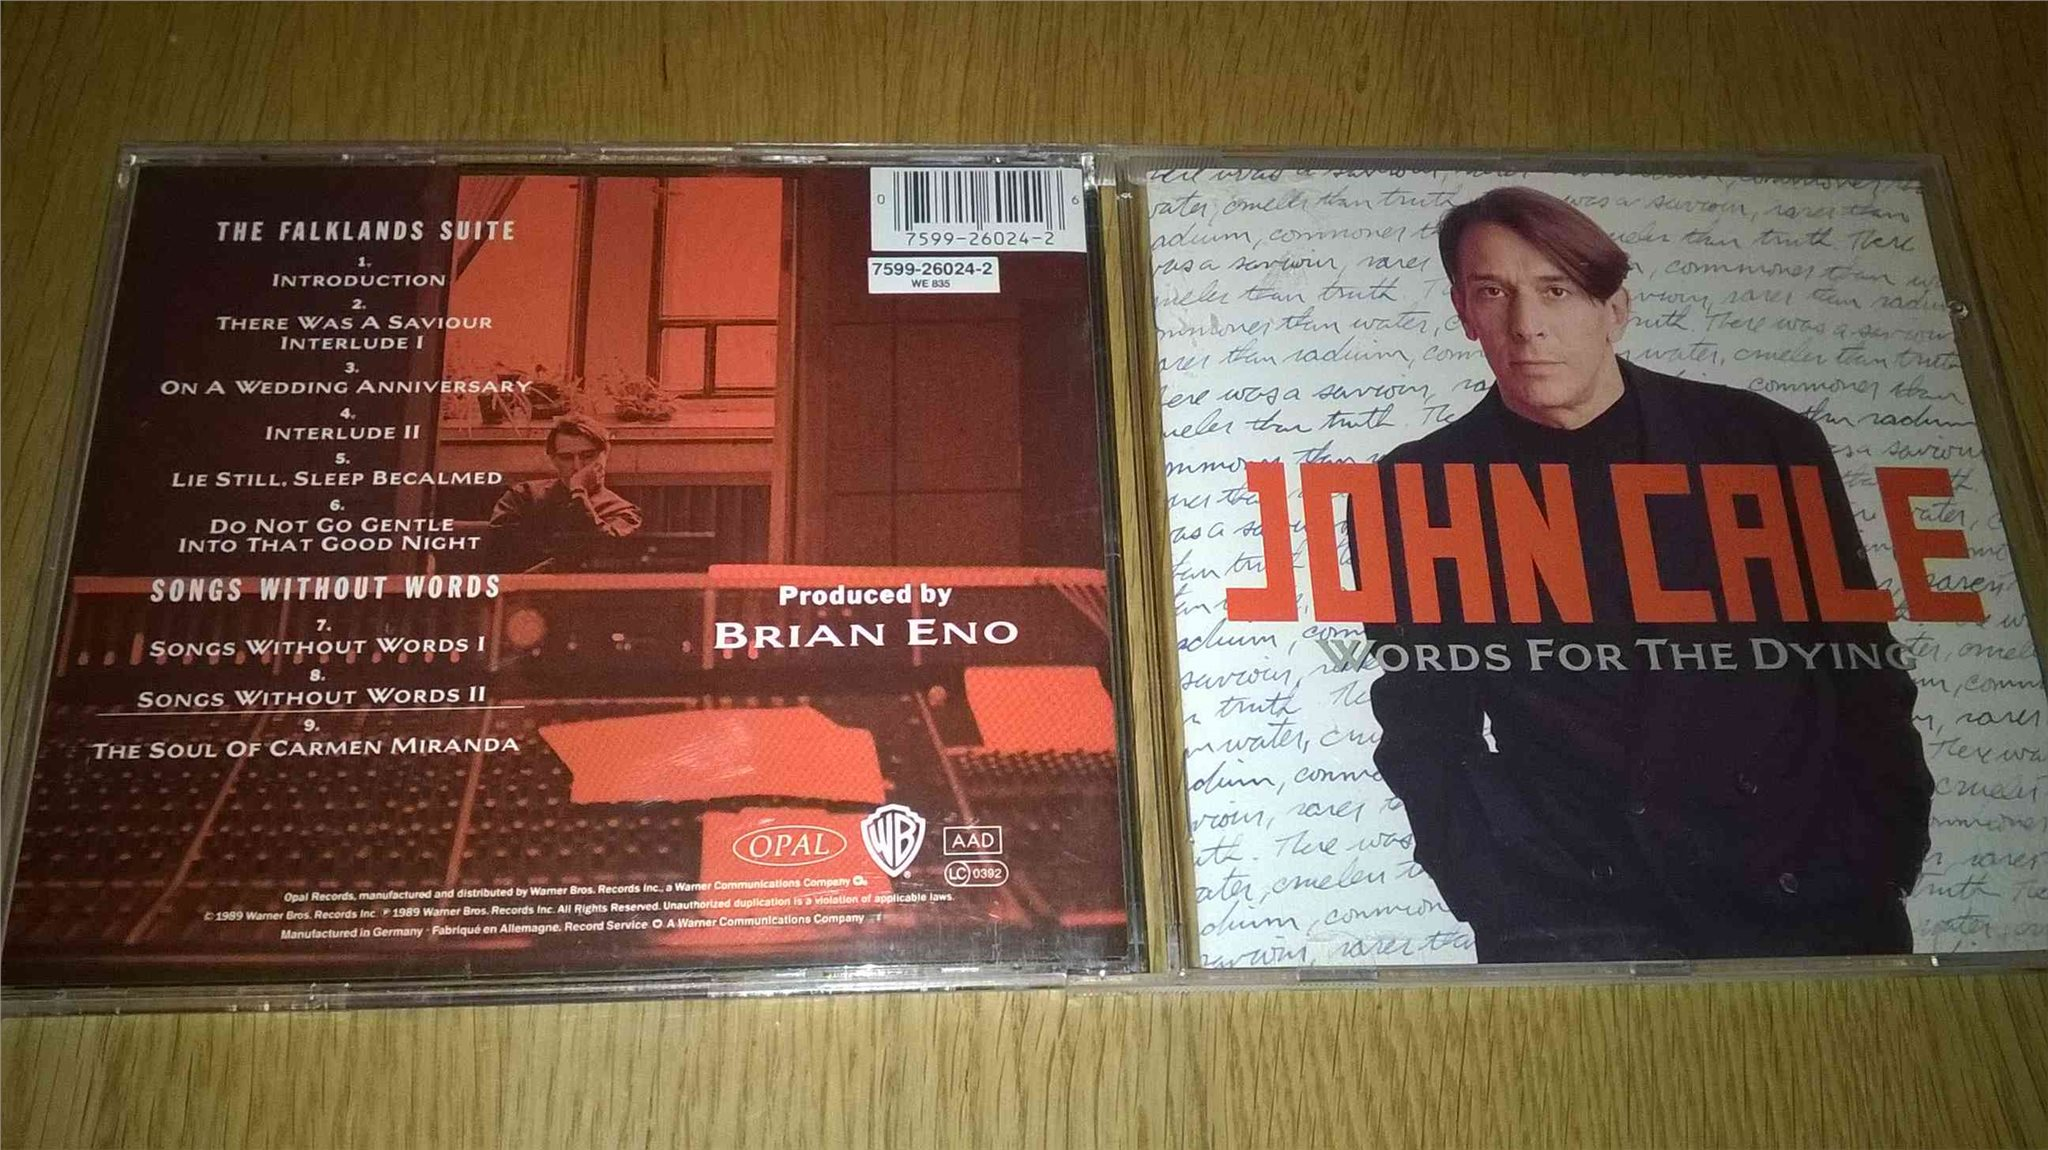 John Cale - Words For The Dying, CD